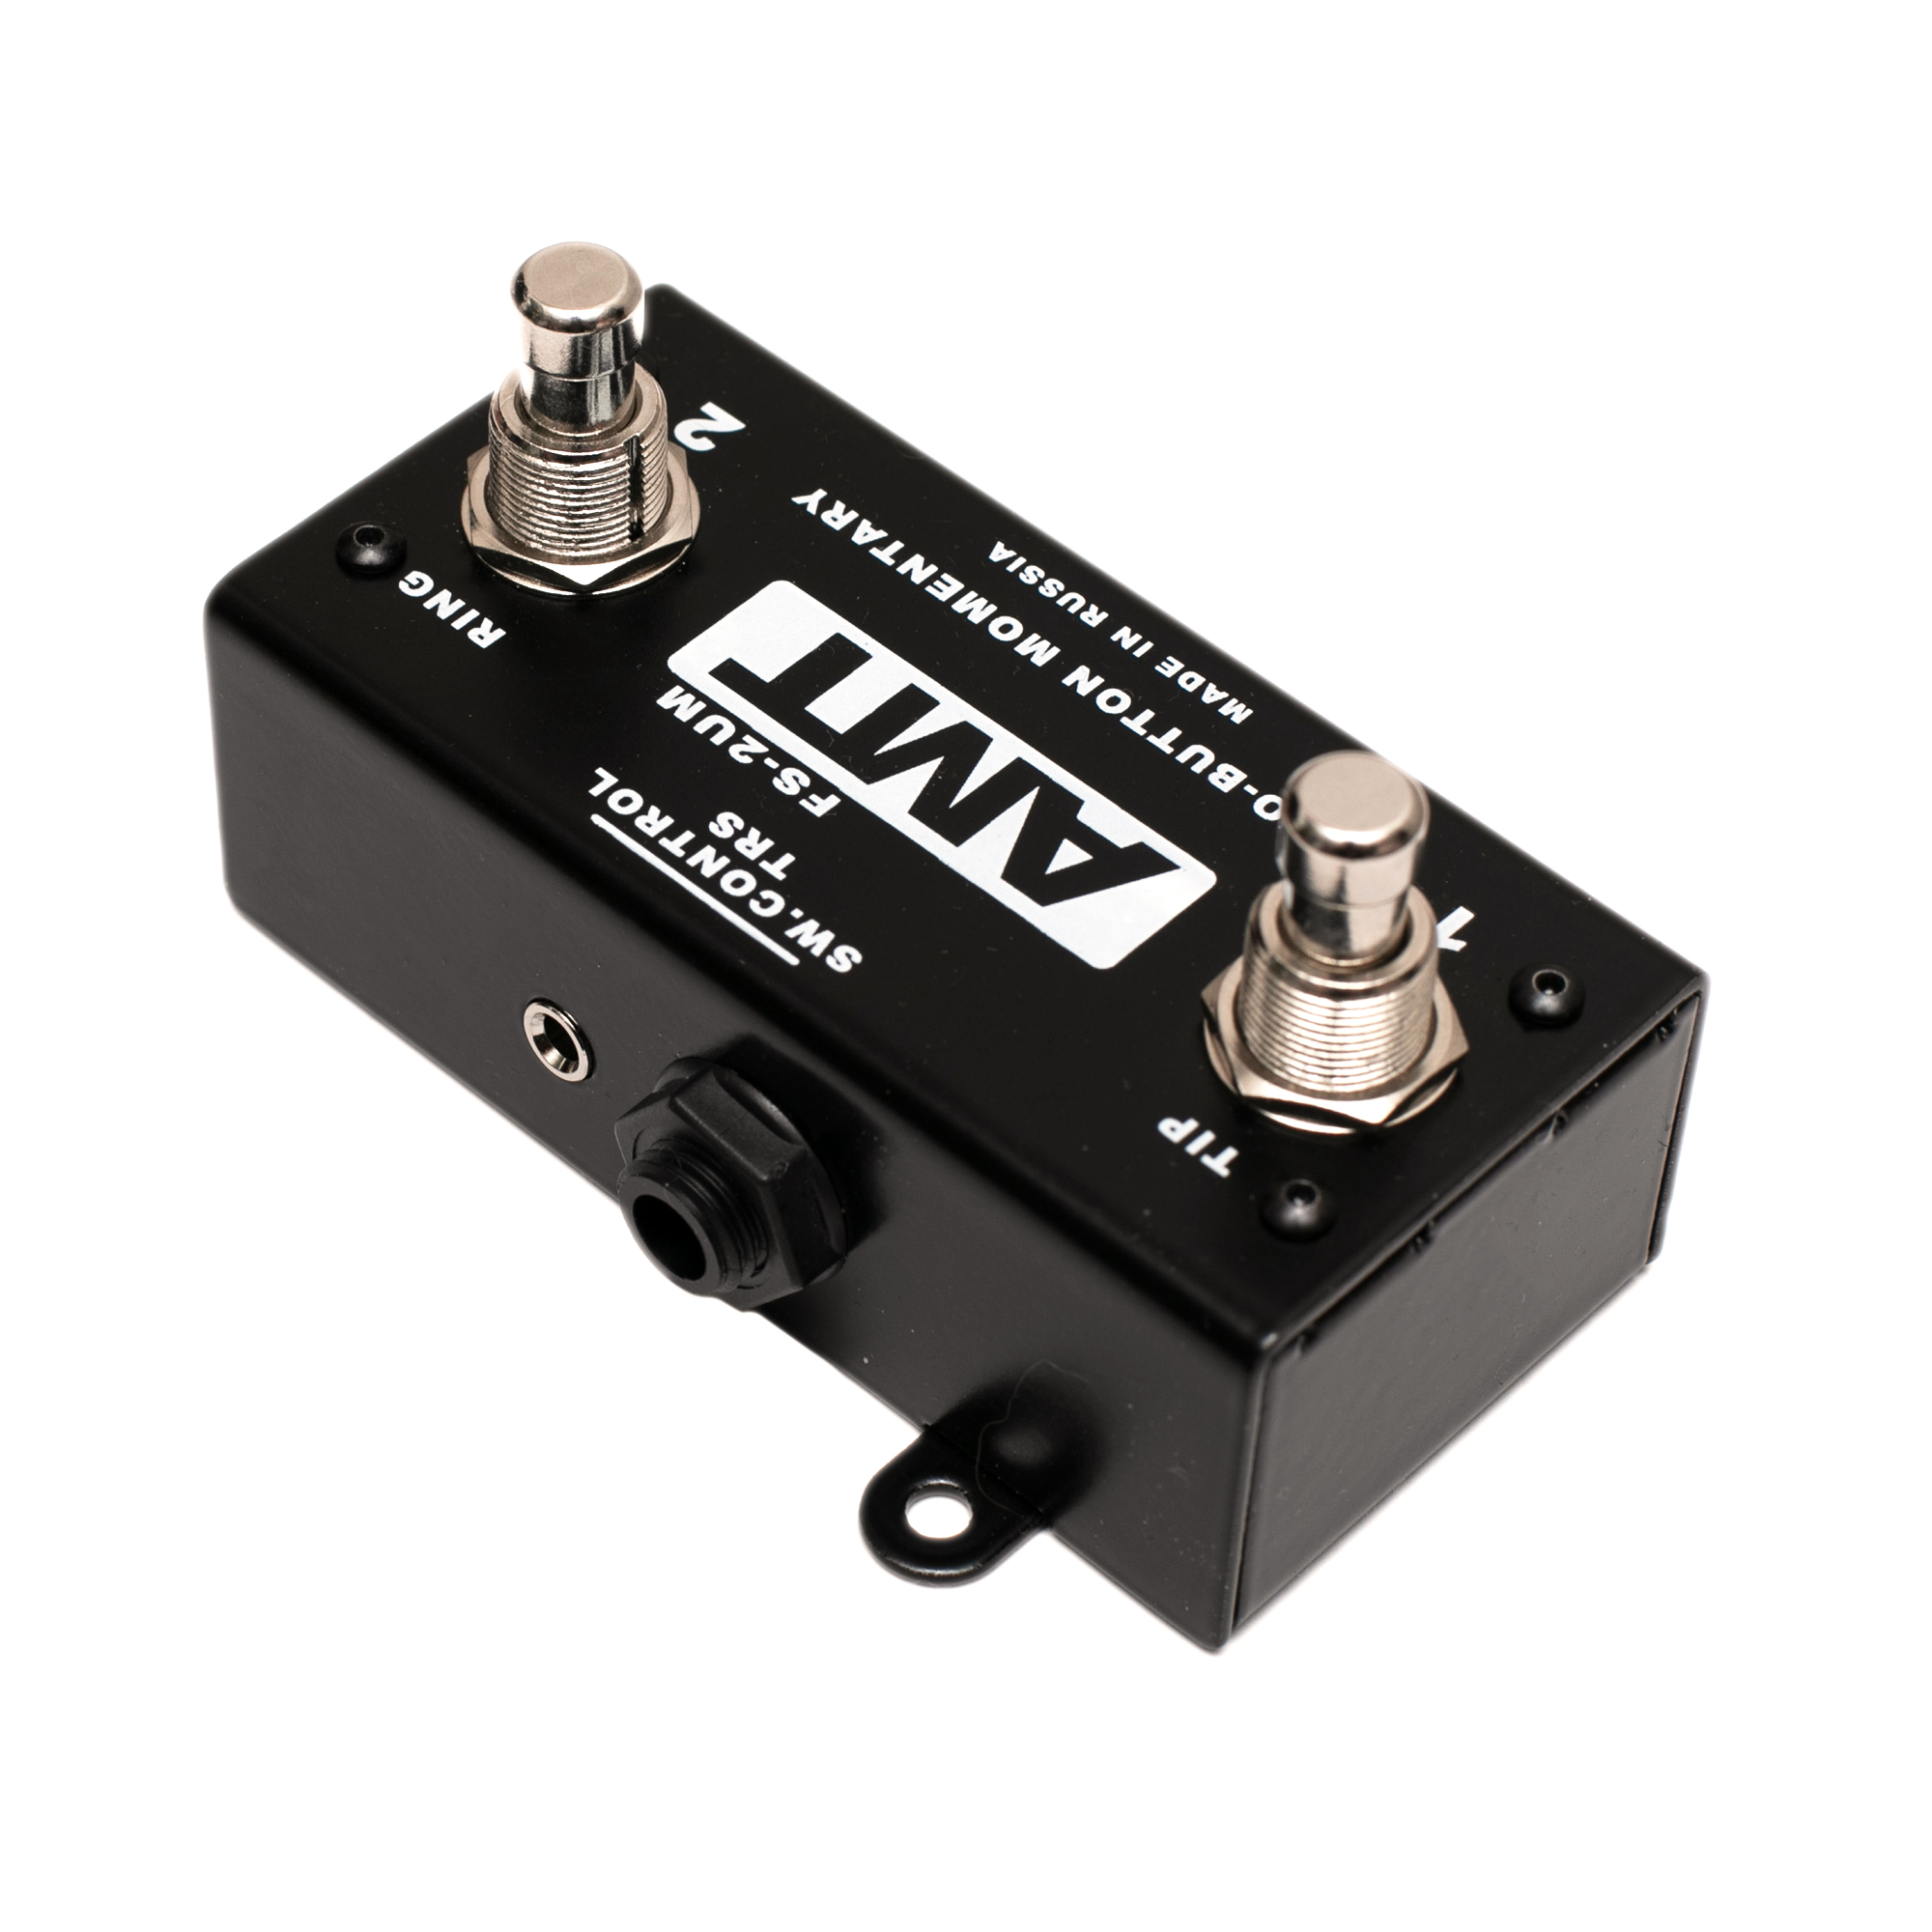 AMT FS-2UM - silent mini footswitch with momentary (unlatched) buttons